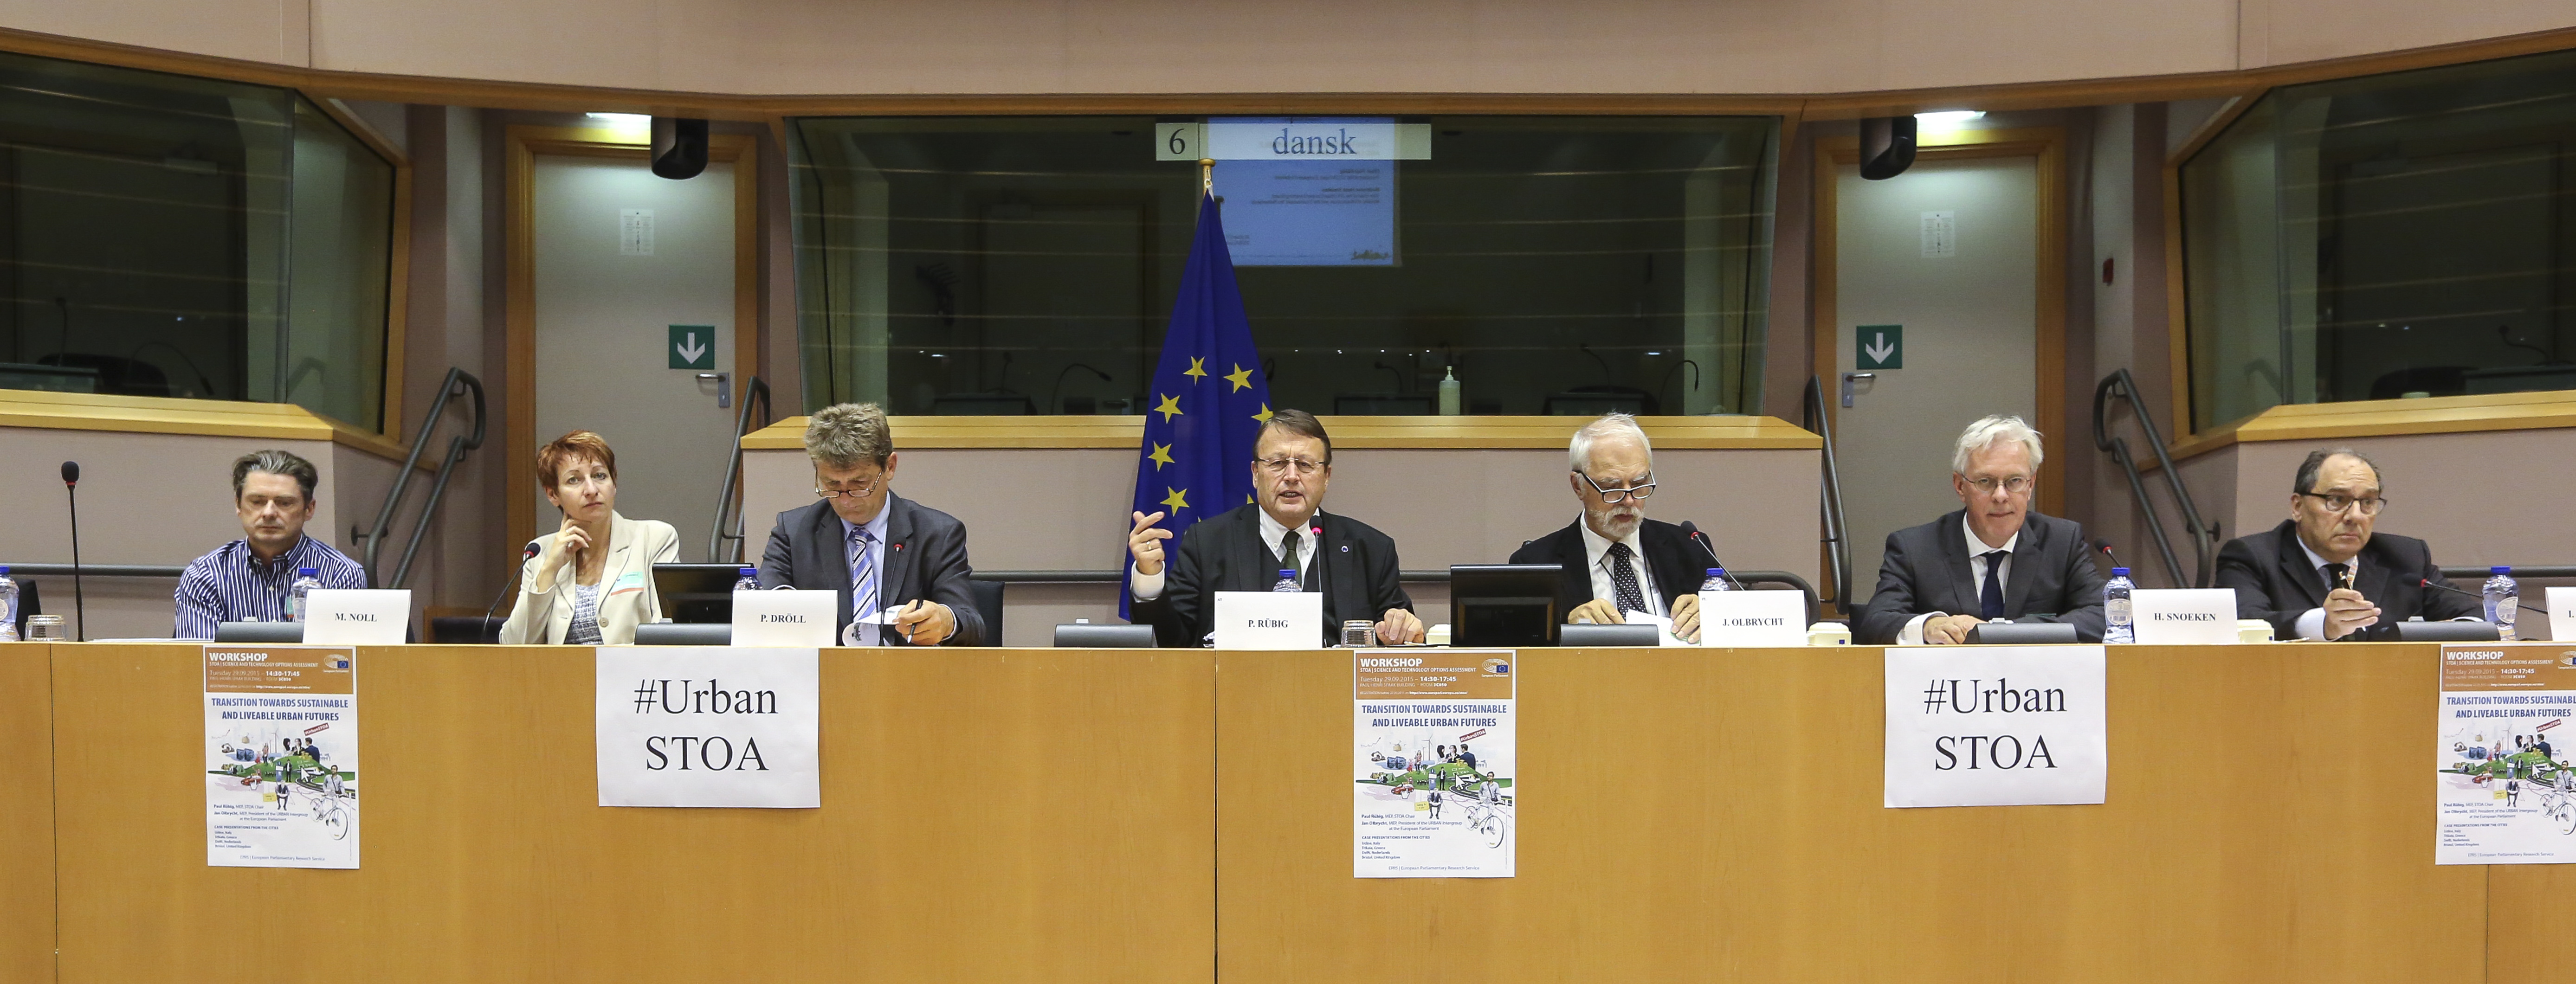 STOA ' Transition towards sustainable and Liveable Urban